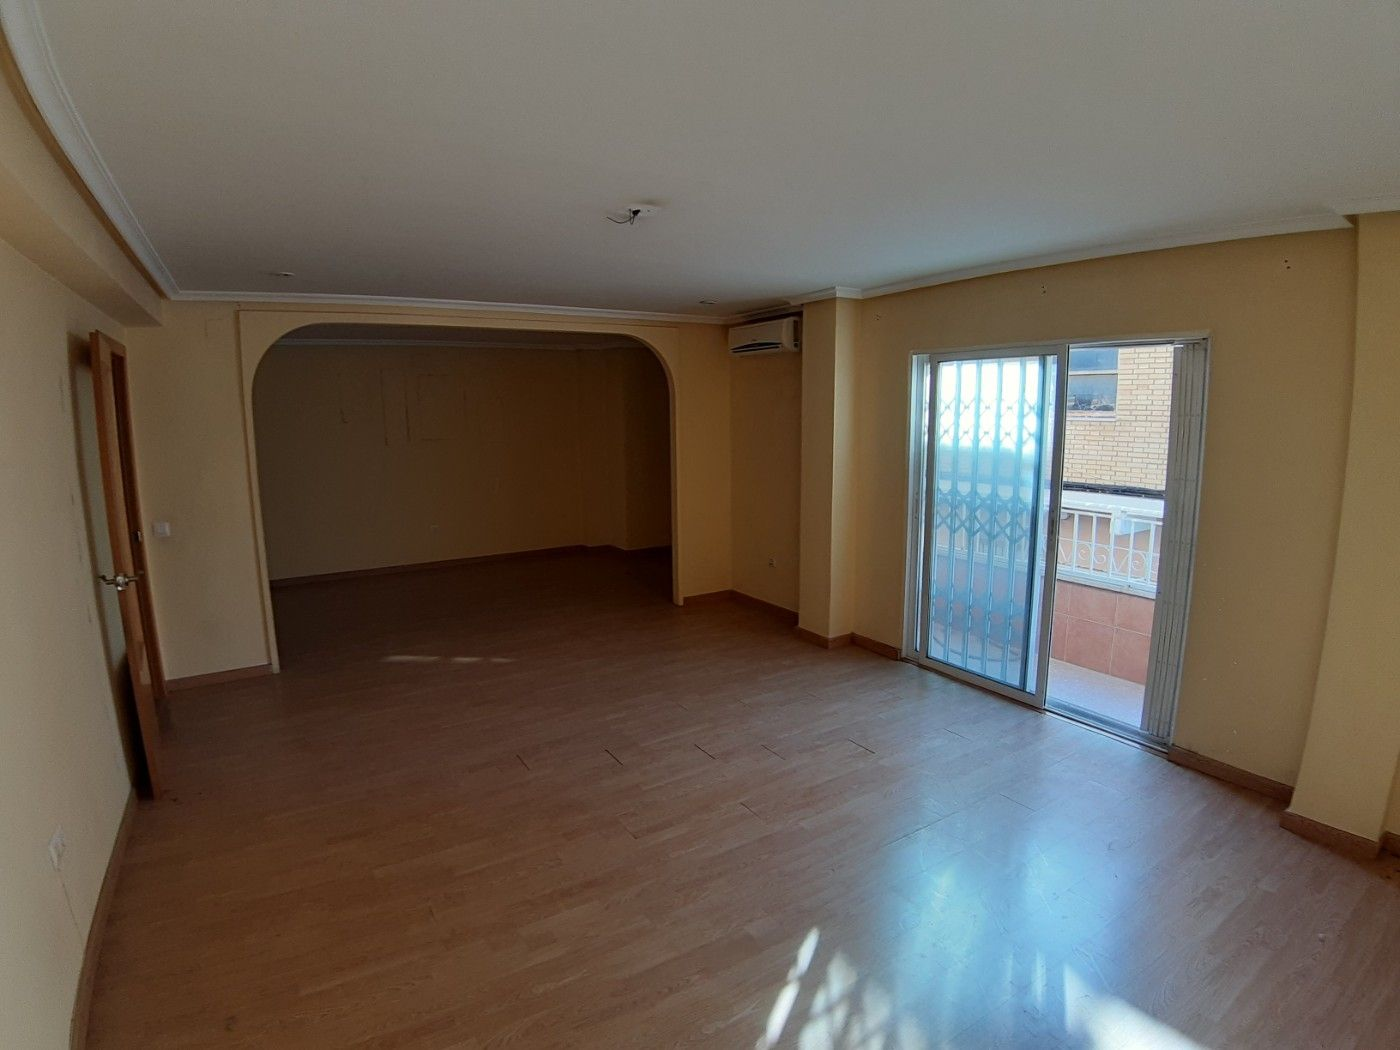 Appartement en Calle major, 111. Vivienda grande en el centro